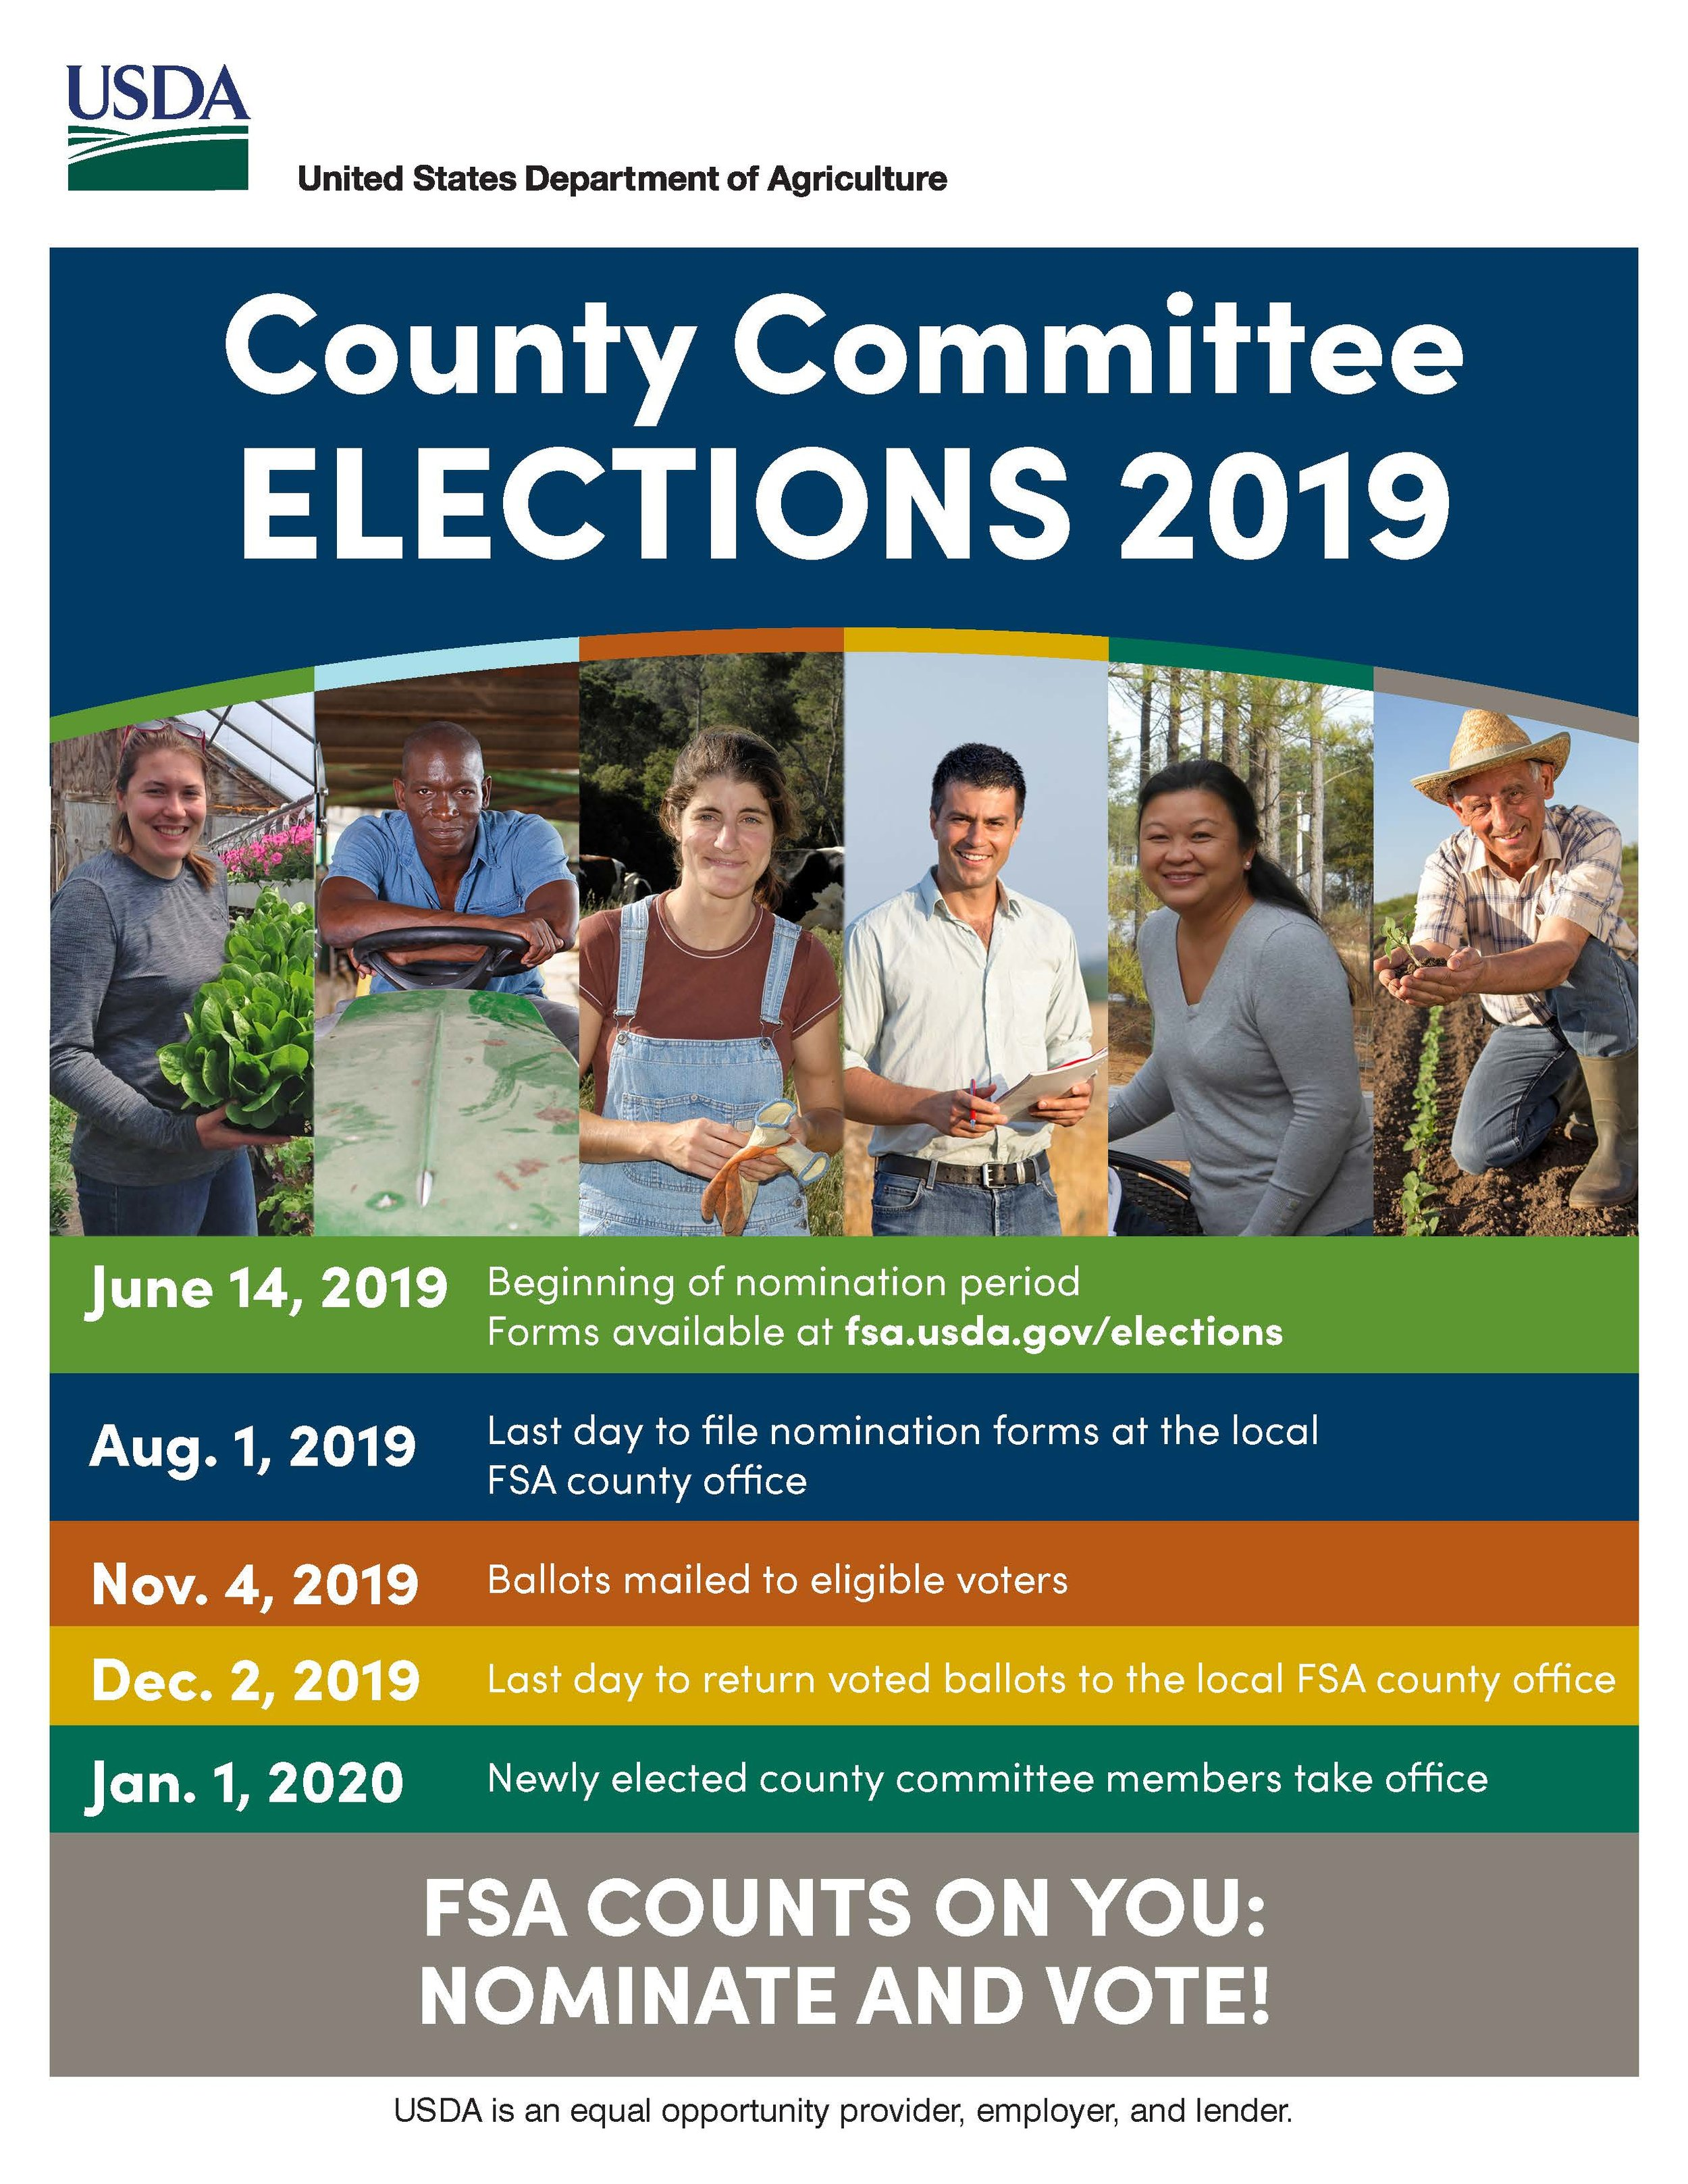 2019 County Committee Elections Poster-Letter-size-English.jpg